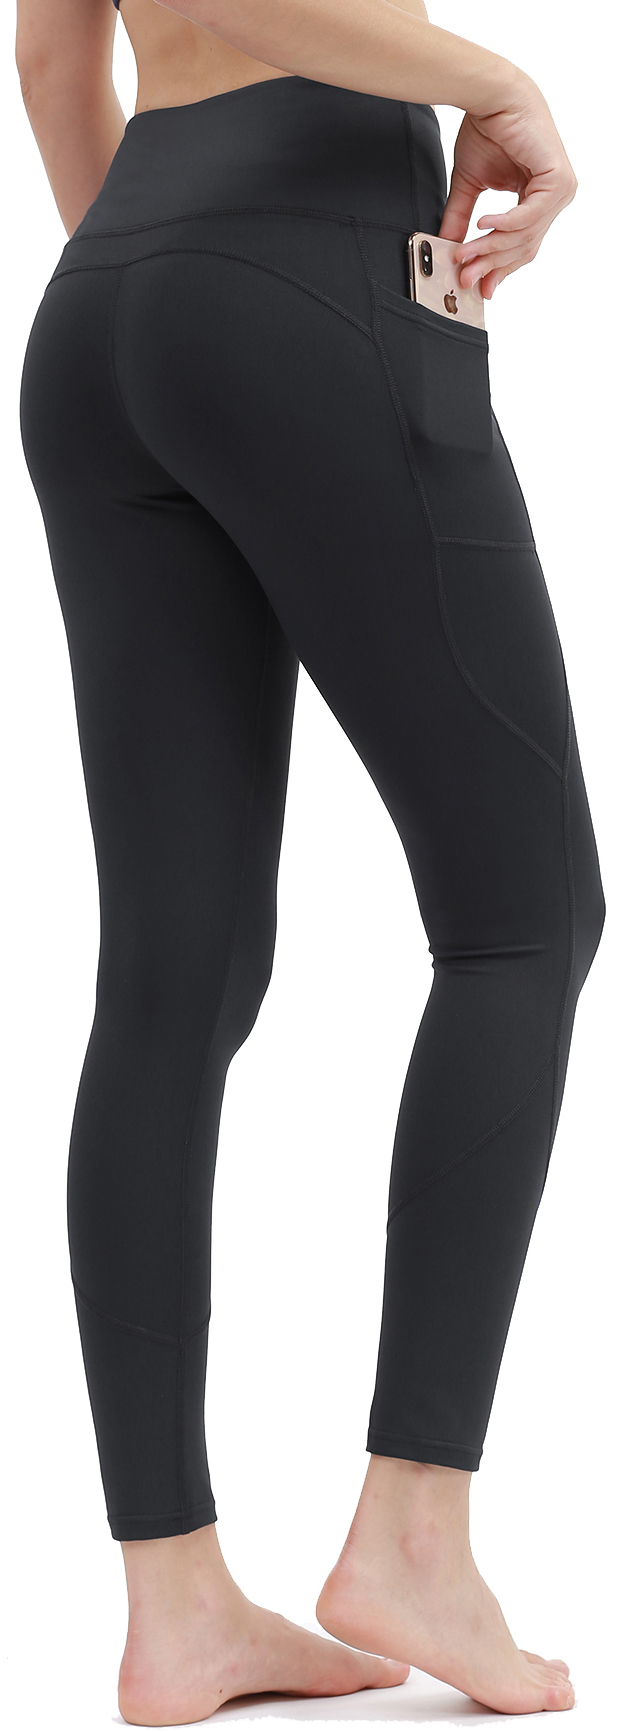 DILANNI High Waisted Leggings for Women with Pockect - Soft Athletic Tummy Control Pants for Running Cycling Yoga Workout